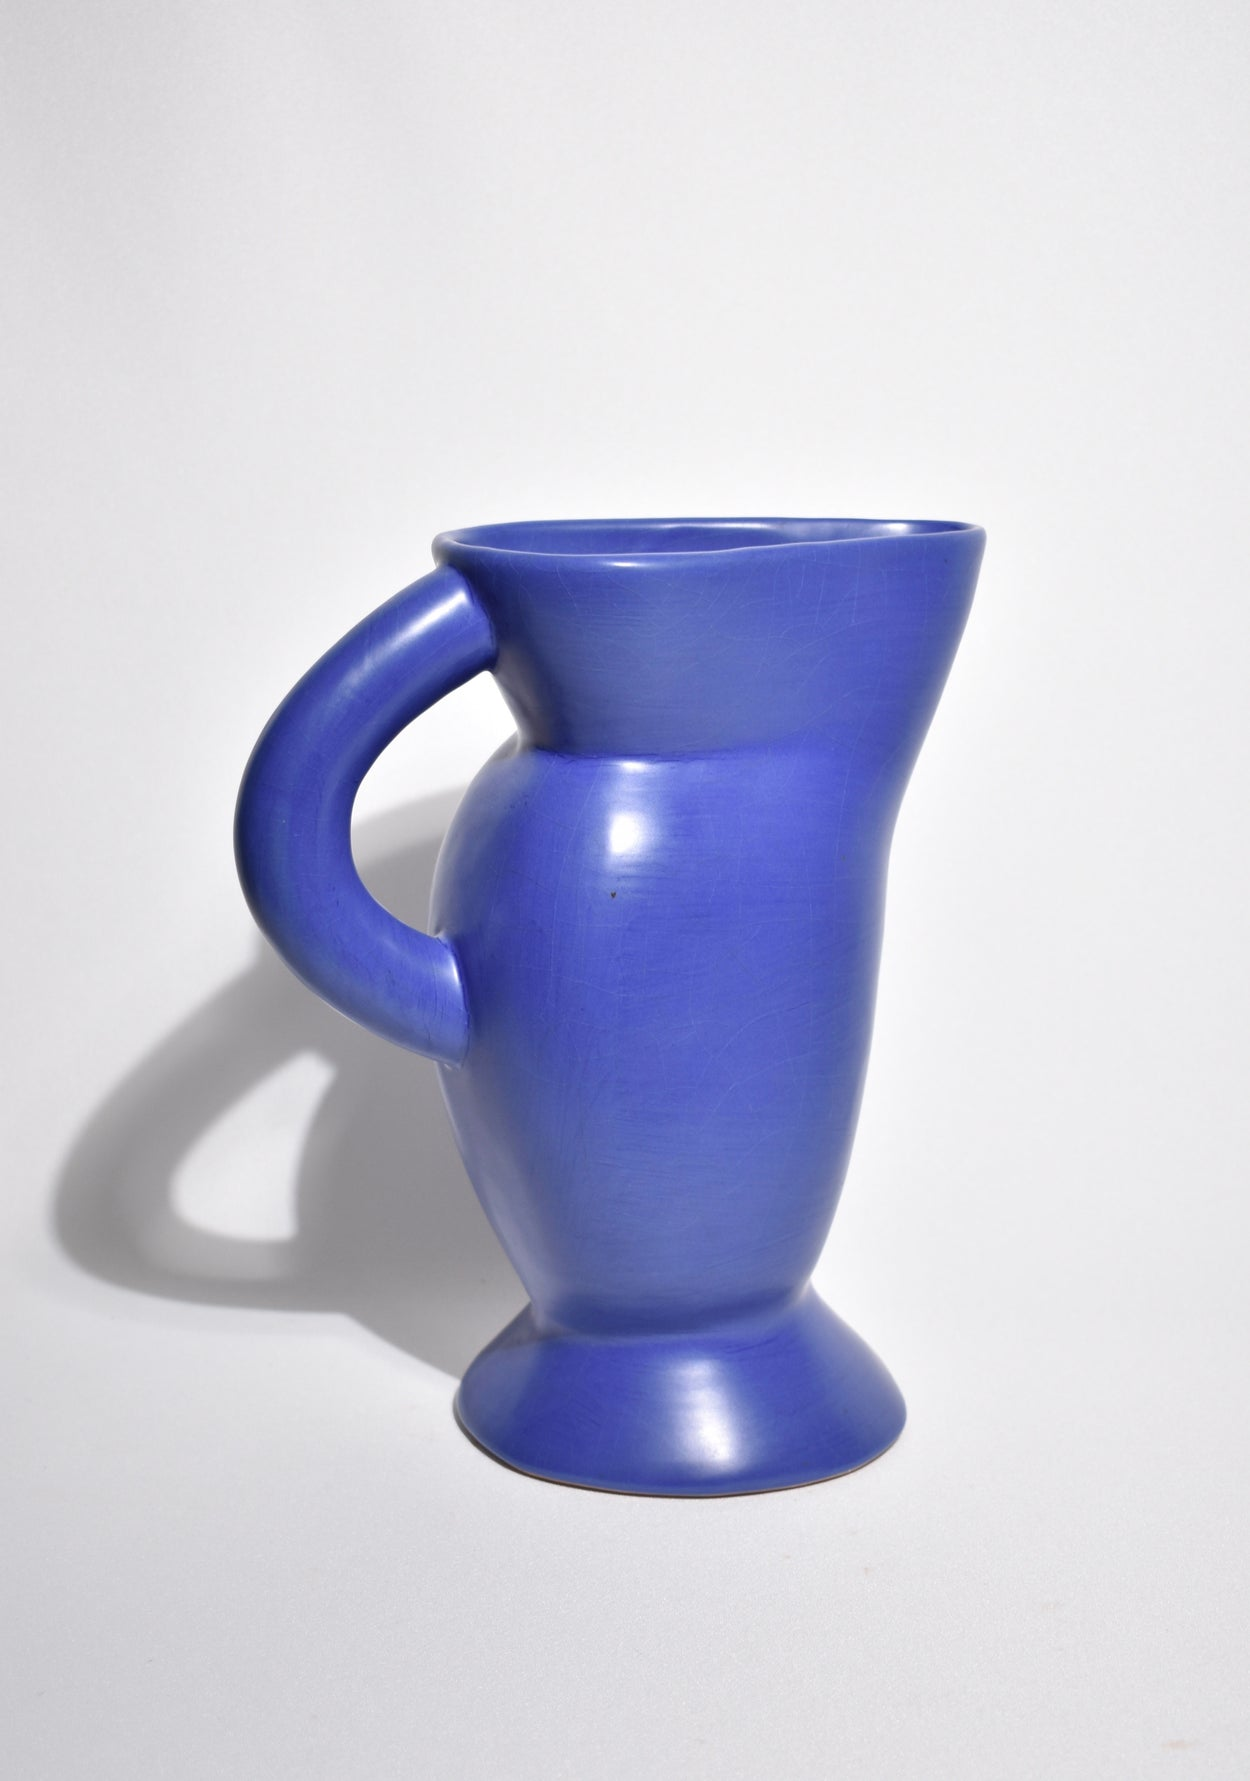 Sculptural Blue Ceramic Pitcher